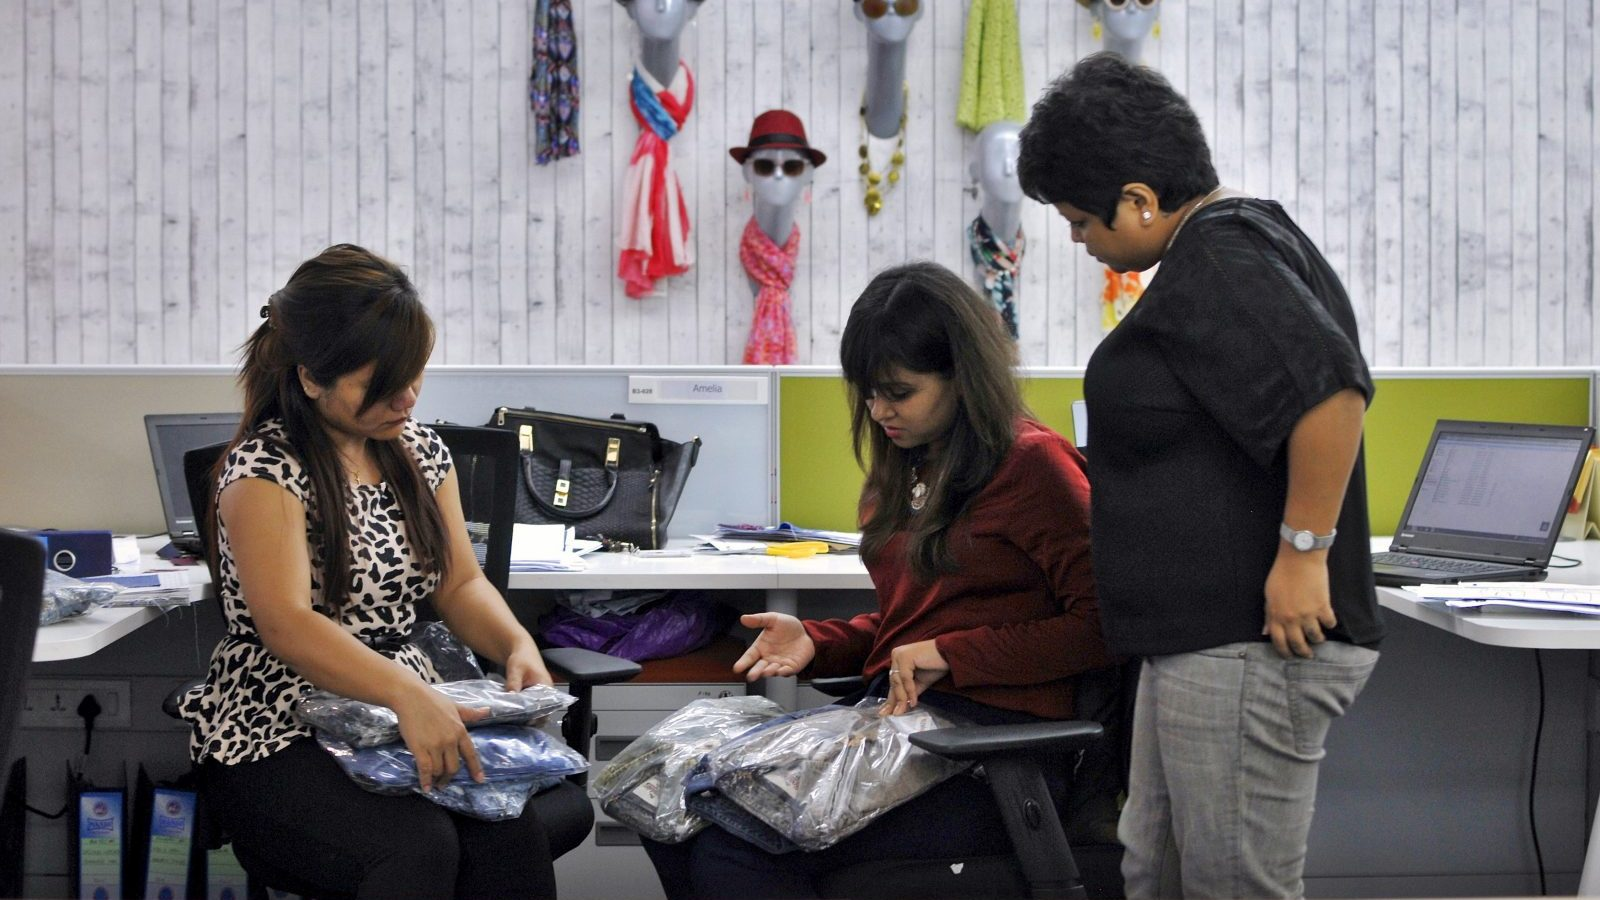 Employees inspect apparel packaging before shipping, in Myntra's office in Bengaluru, India, May 6, 2015. India's biggest online fashion retailer, Myntra, could turn profitable within a year or two as it cuts back on bargains, improves its mobile shopping app and pushes more of its own label garments, a top executive said. Picture taken May 6, 2015. To match story INDIA-MYNTRA/ REUTERS/Abhishek N. Chinnappa - GF10000087939